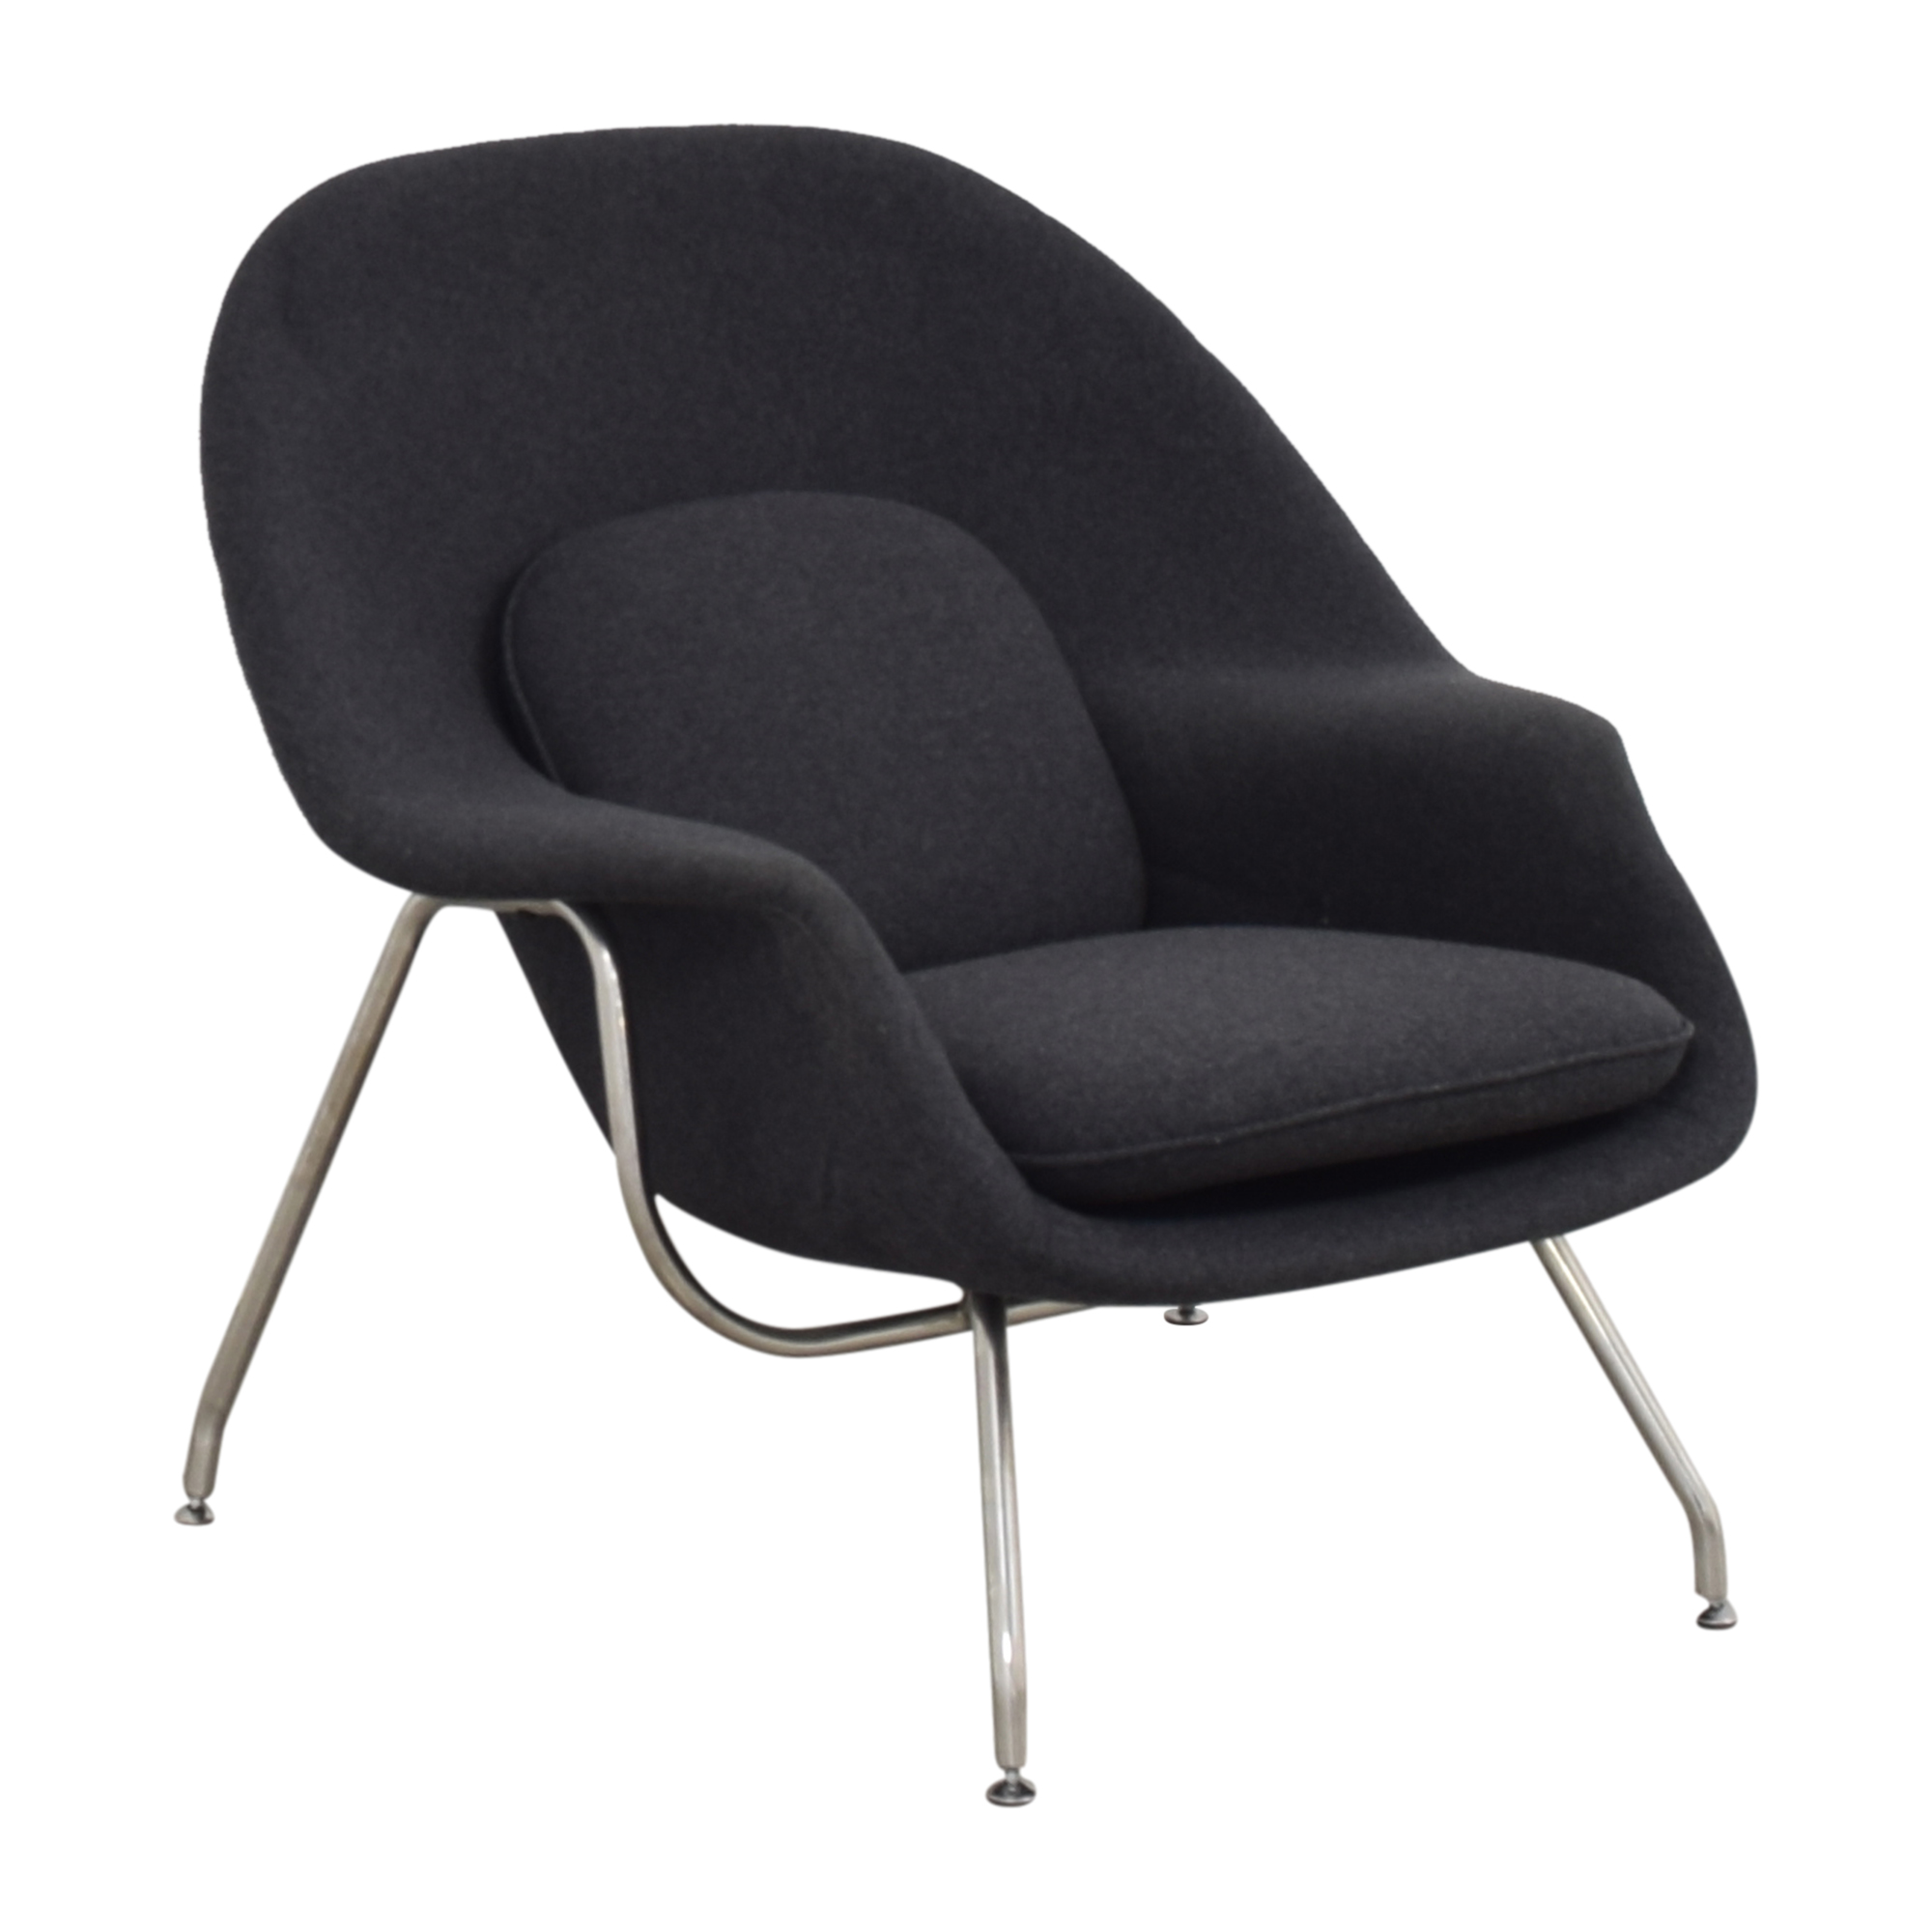 Womb-Style Replica Chair pa